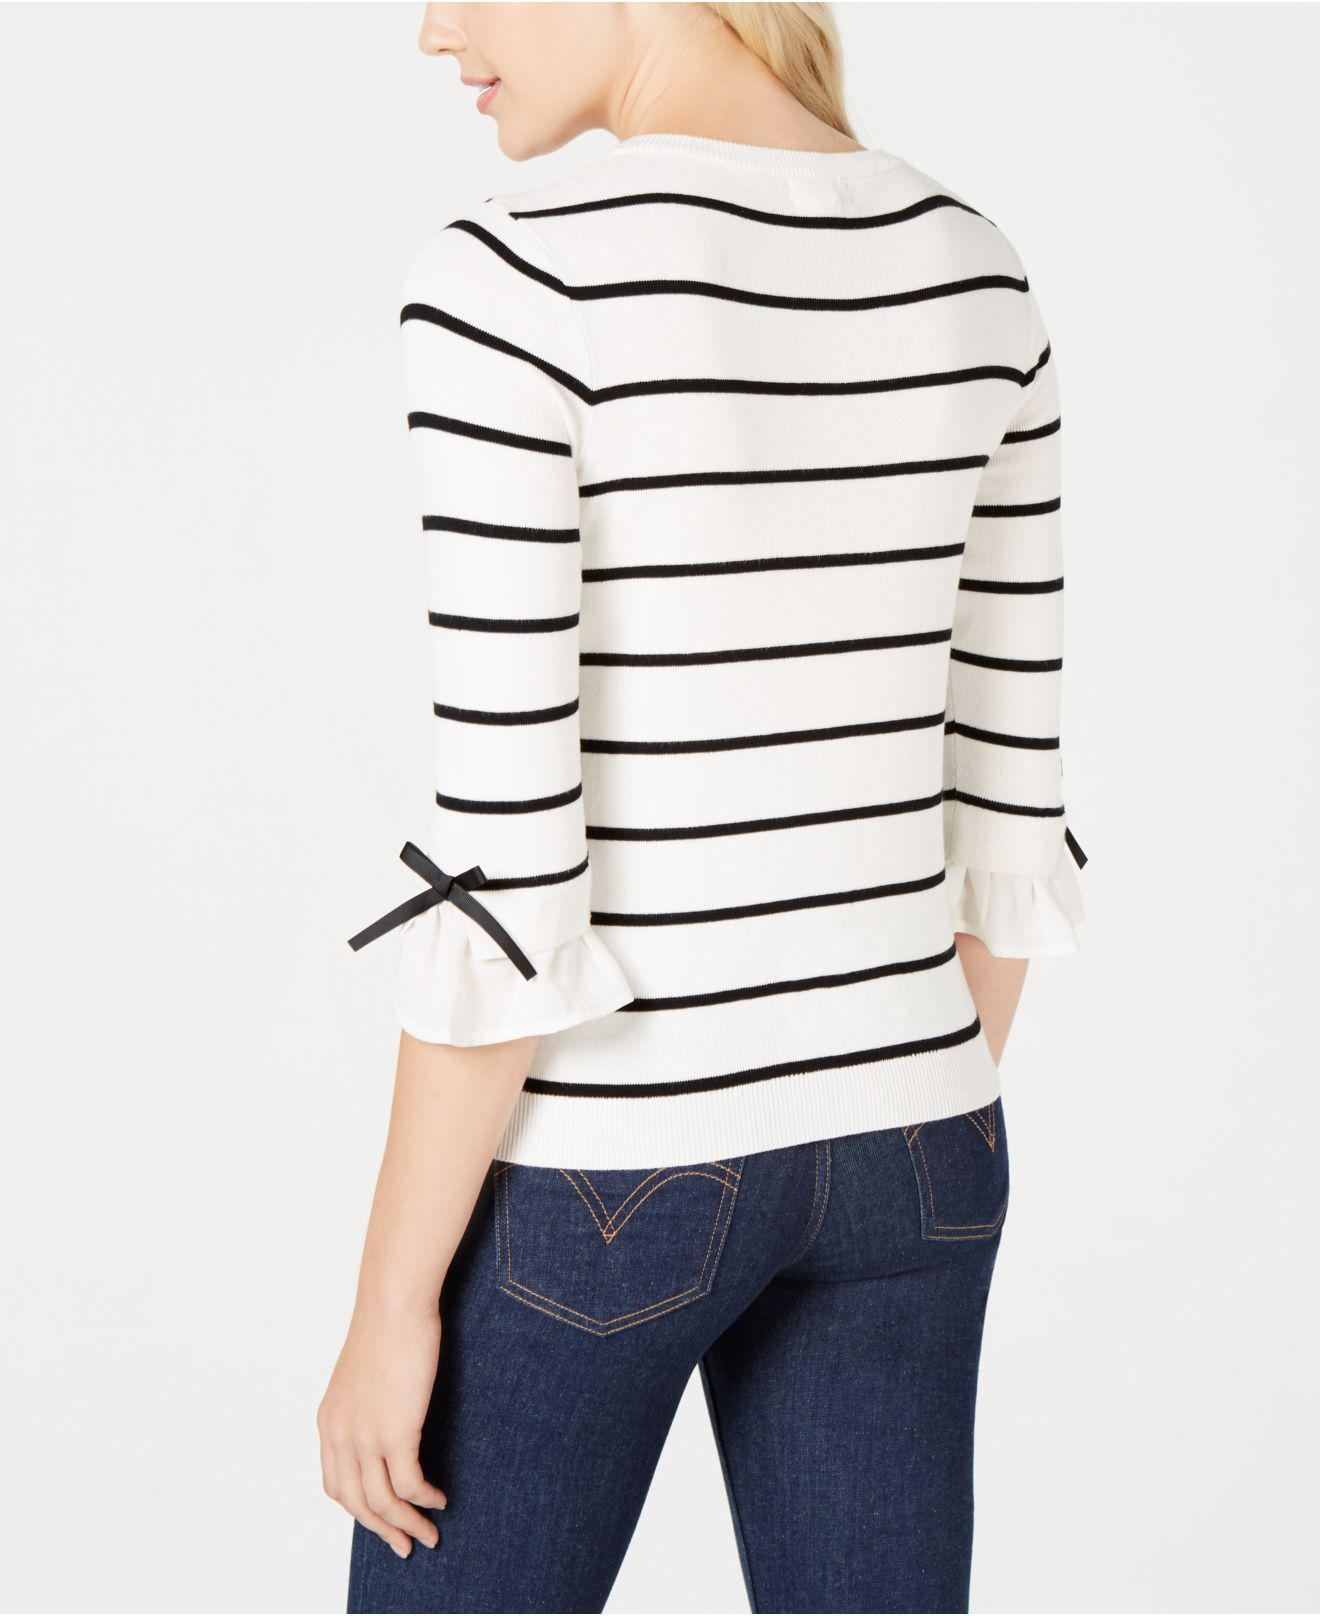 9cda1cd70d Lyst - Maison Jules Striped Bow-trim Sweater